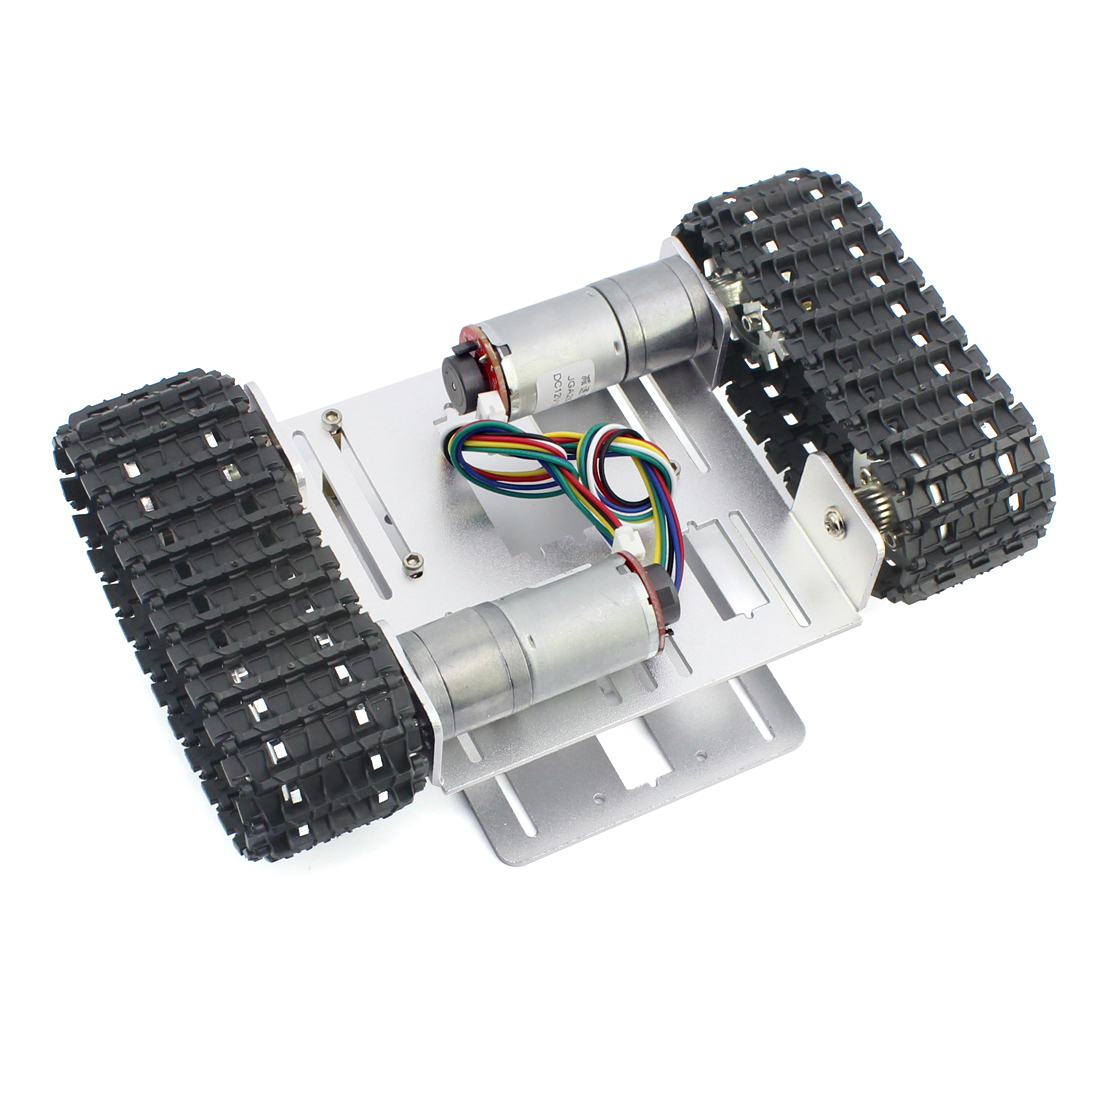 Aluminium Alloy Tank Intelligent Crawler Robotic Chassis Bottom for DIY Kits RC Racing Robot Car Accessory stuhrling 225 1145p2 stuhrling